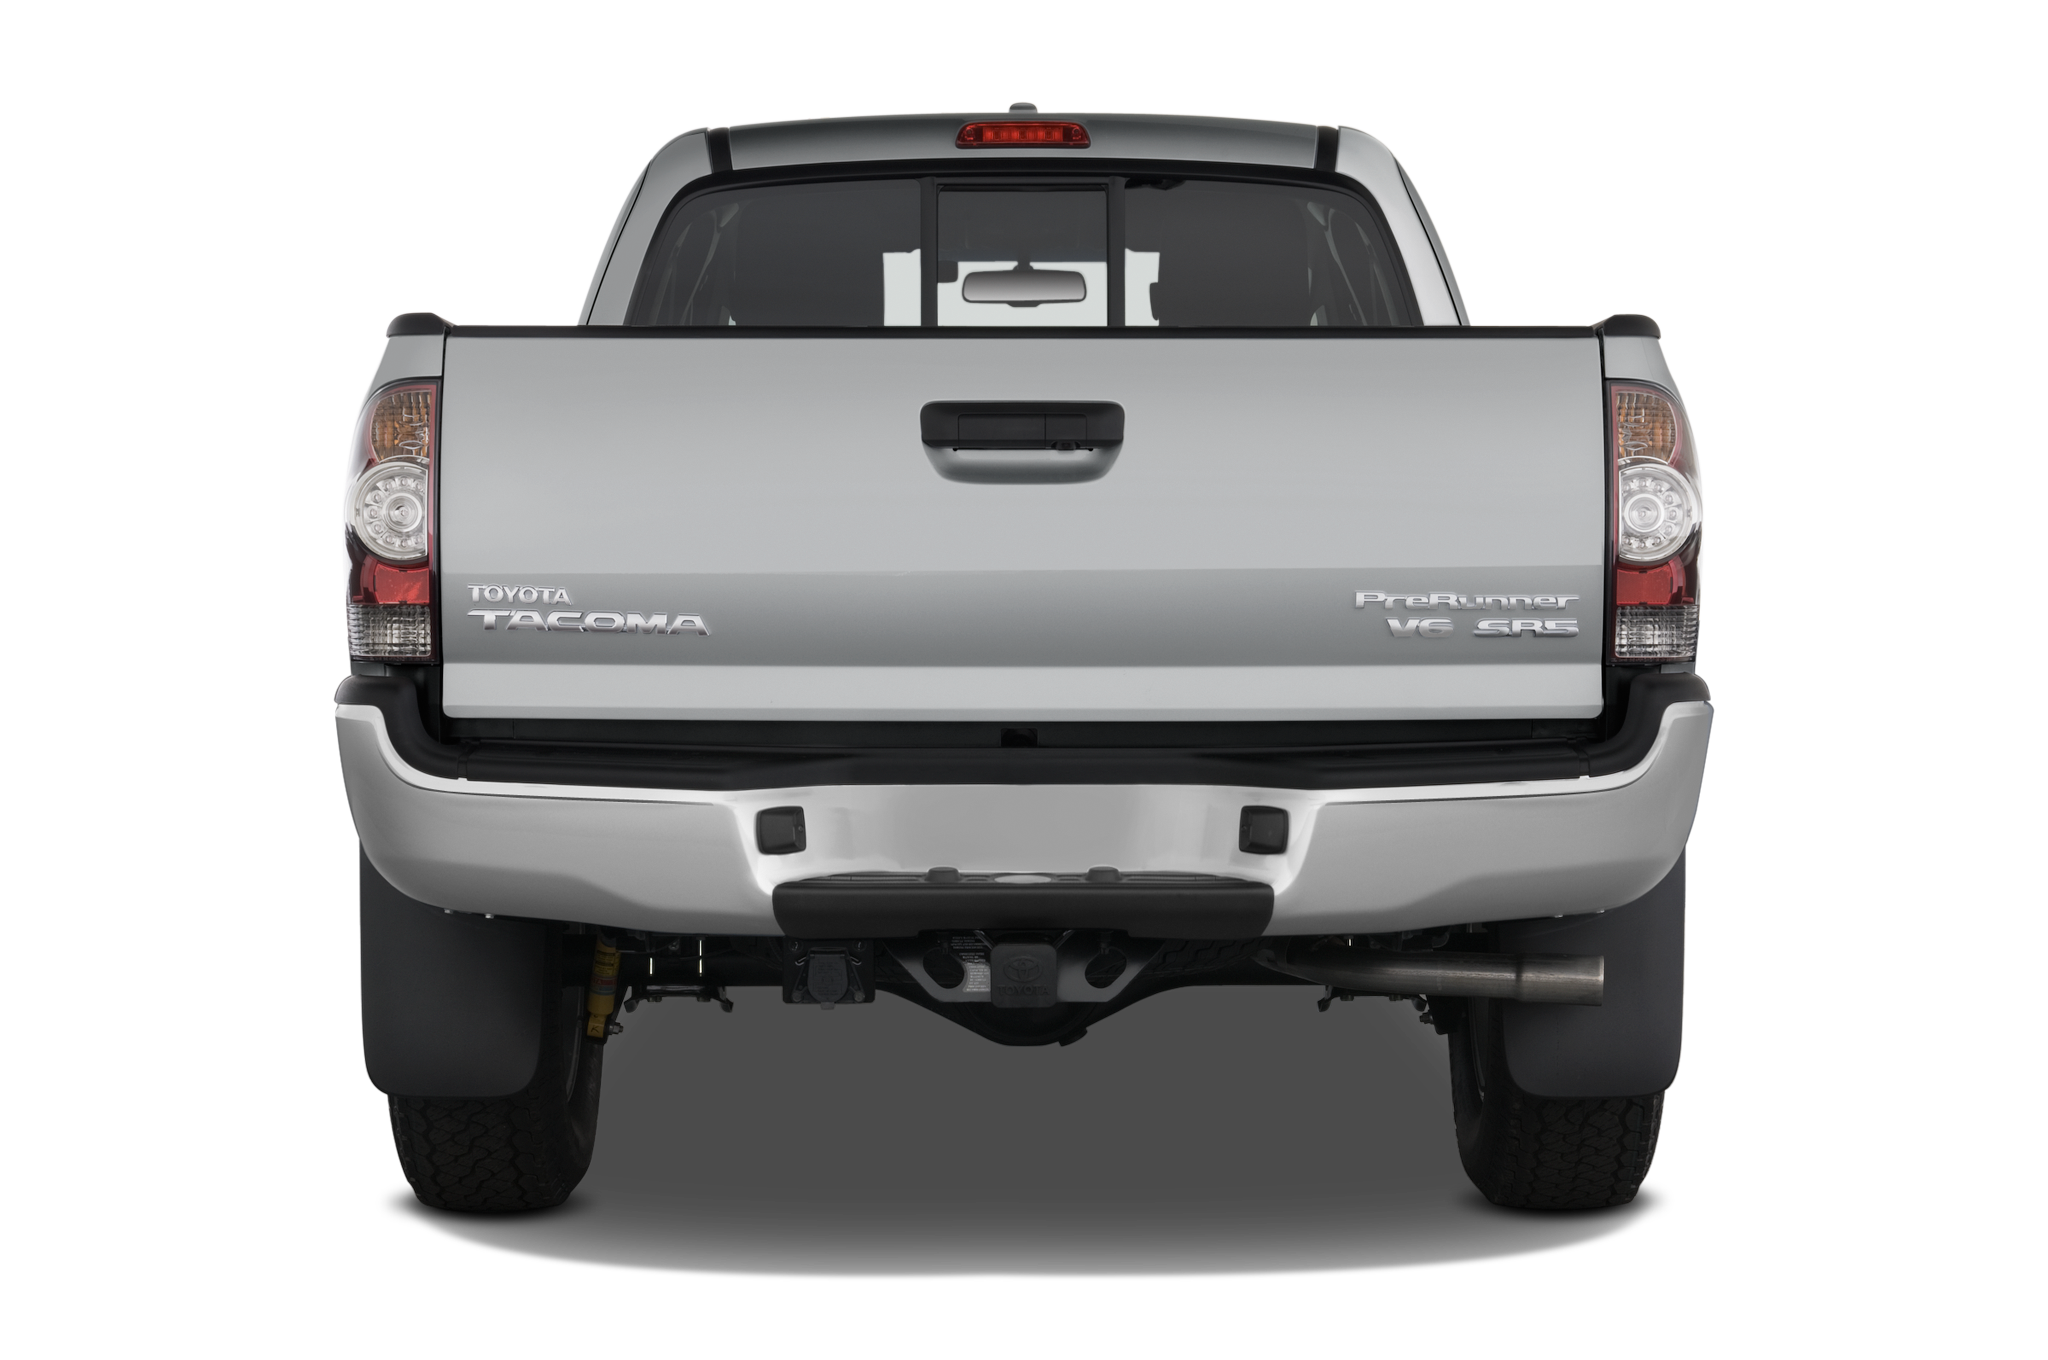 2010-toyota-tacoma-prerunner-access-cab-v6-auto-2wd-truck-rear-view Great Description About Tacoma Tailgate